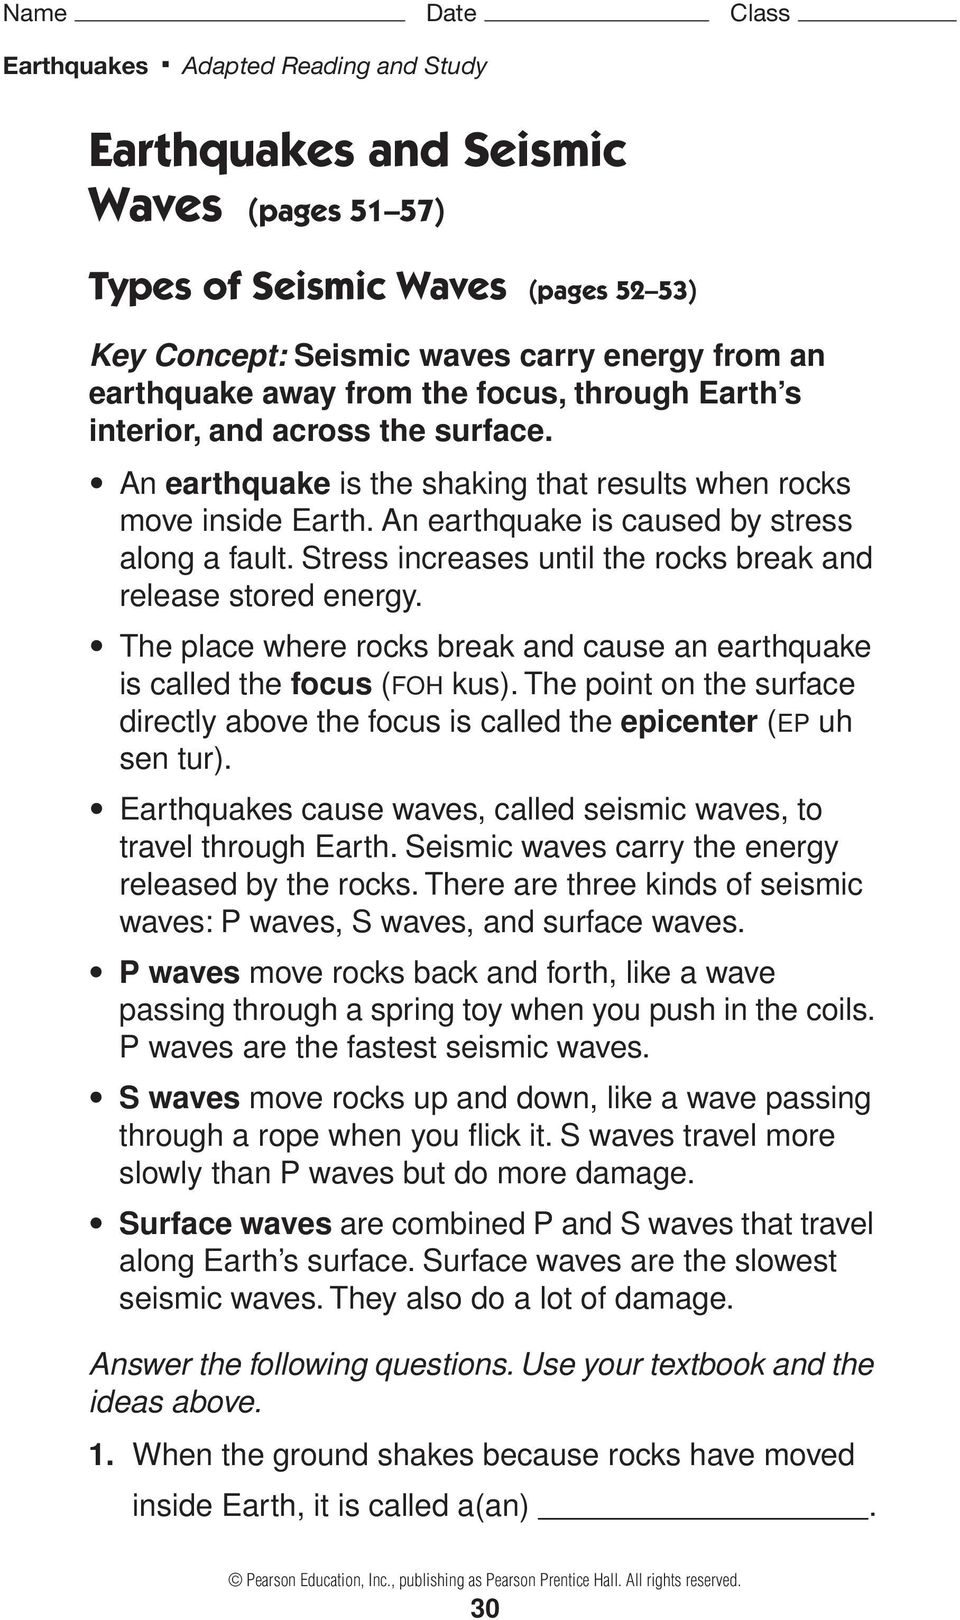 Worksheets Earthquakes And Seismic Waves Worksheet earthquakes and seismic waves pages 51 57 pdf the place where rocks break cause an earthquake is called focus foh kus